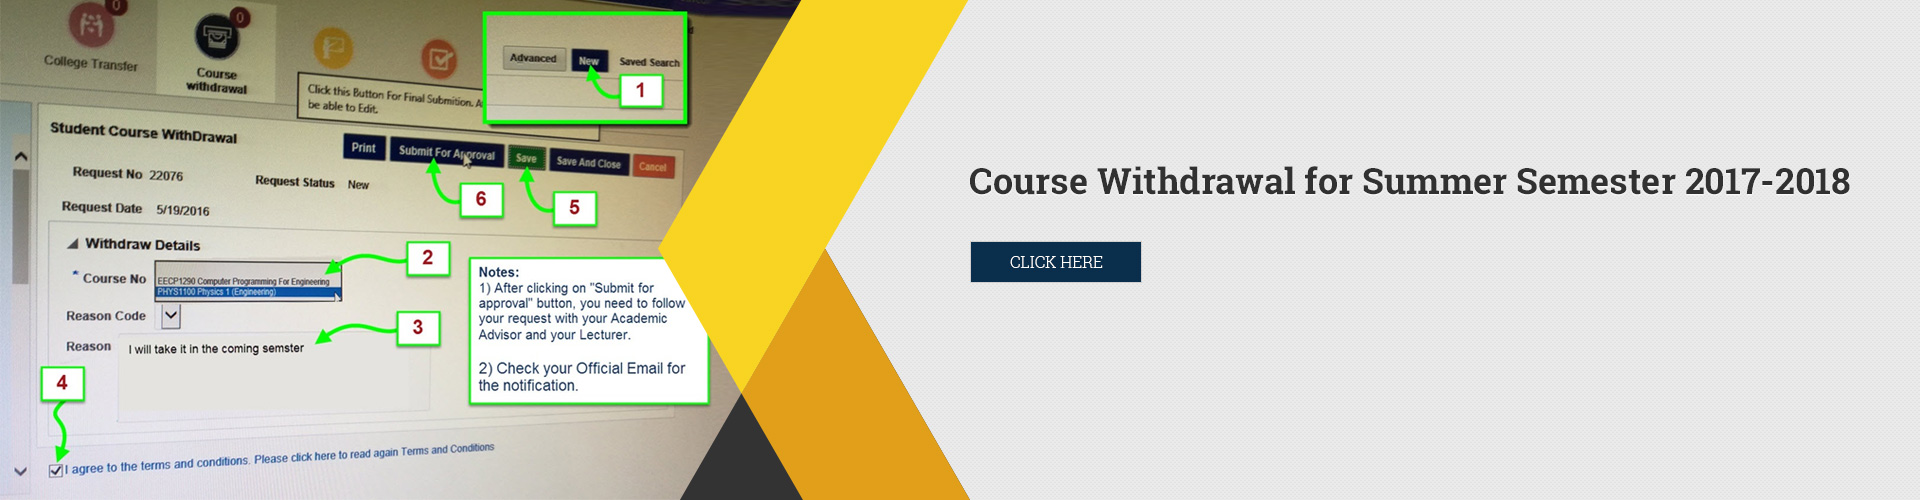 Course Withdrawal for Summer Semester 2017-2018